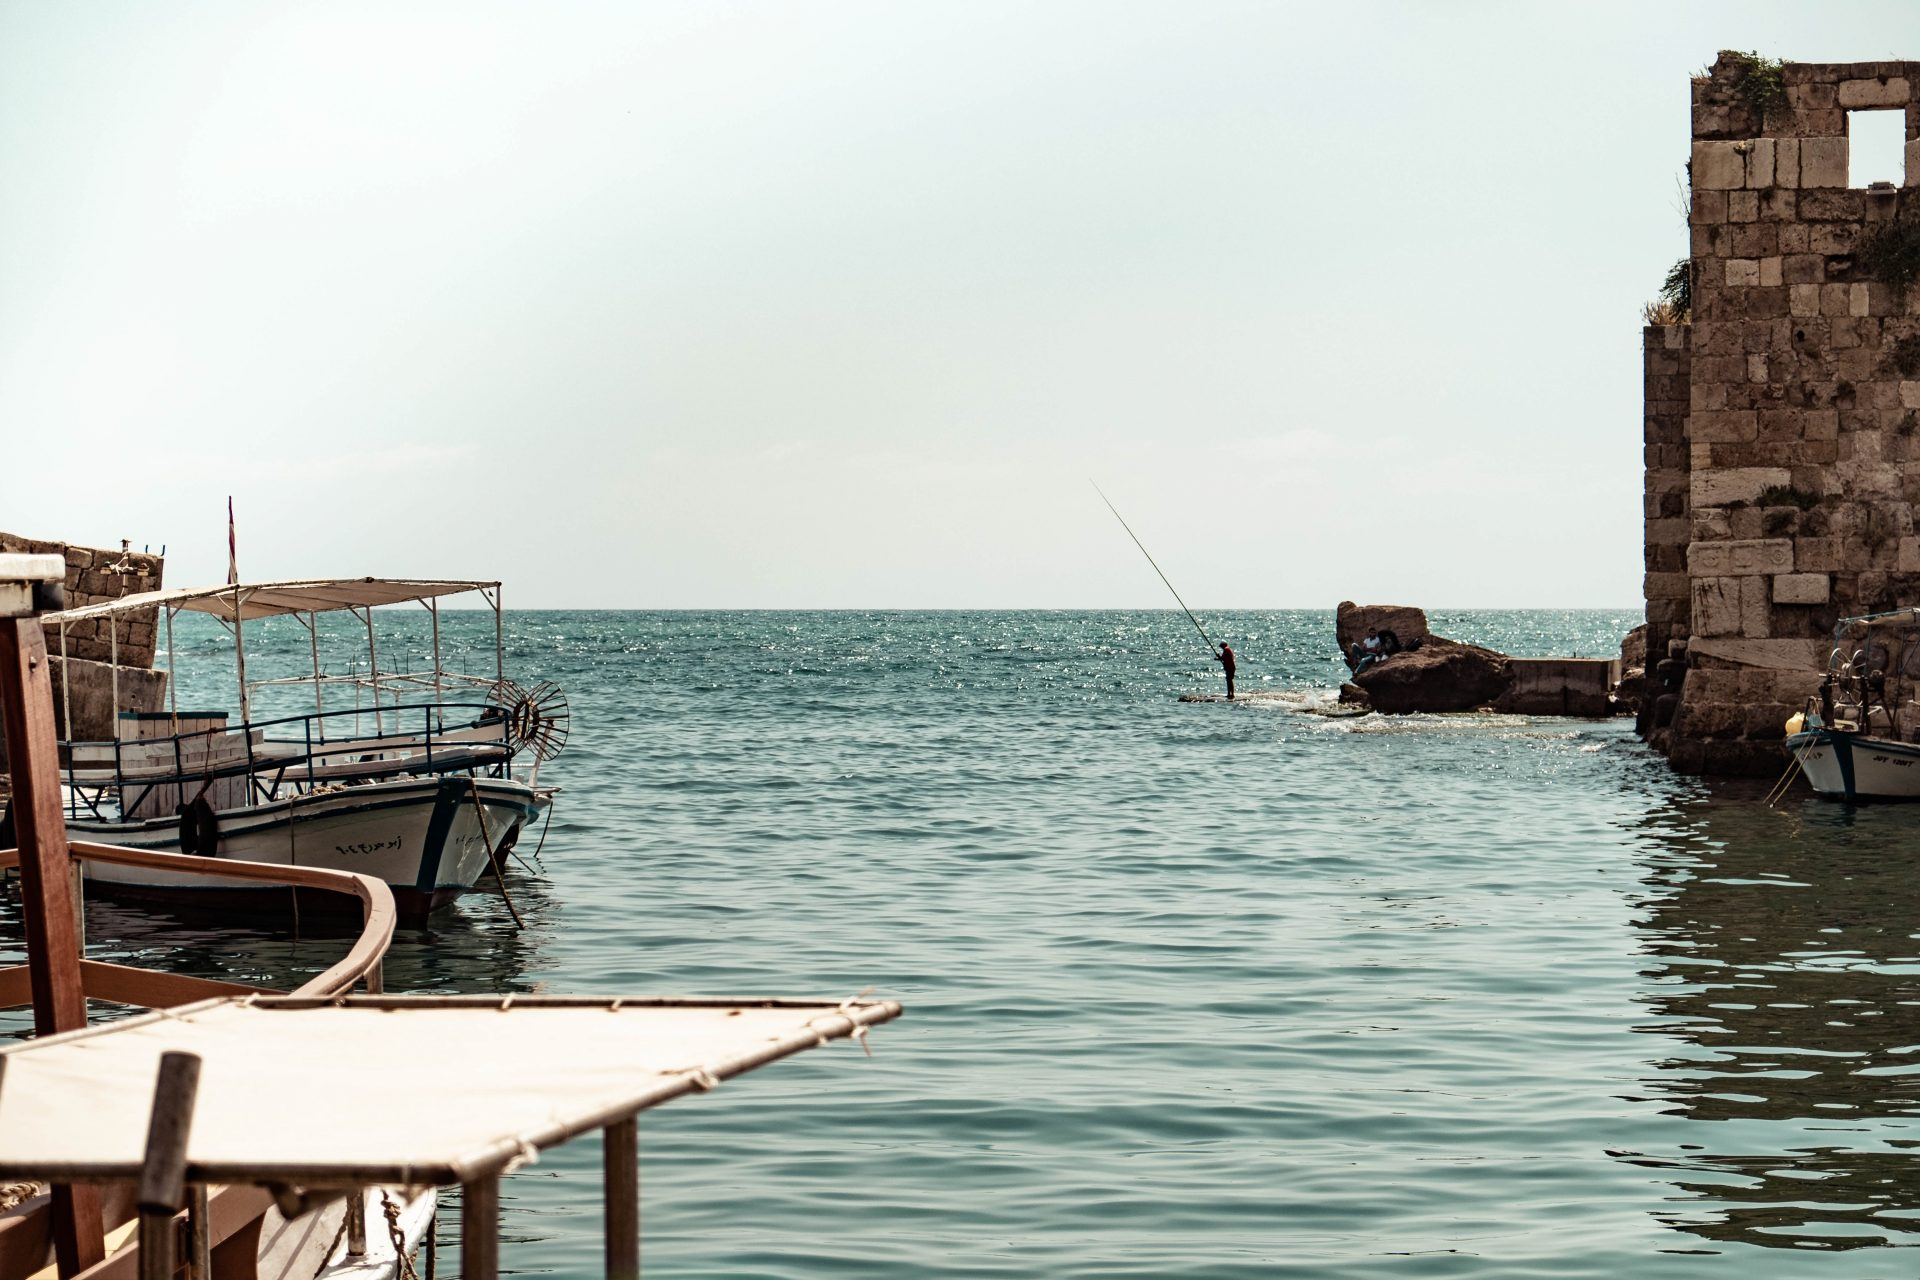 Fisherman fishing in the harbor of Byblos photo by Jo Kassis